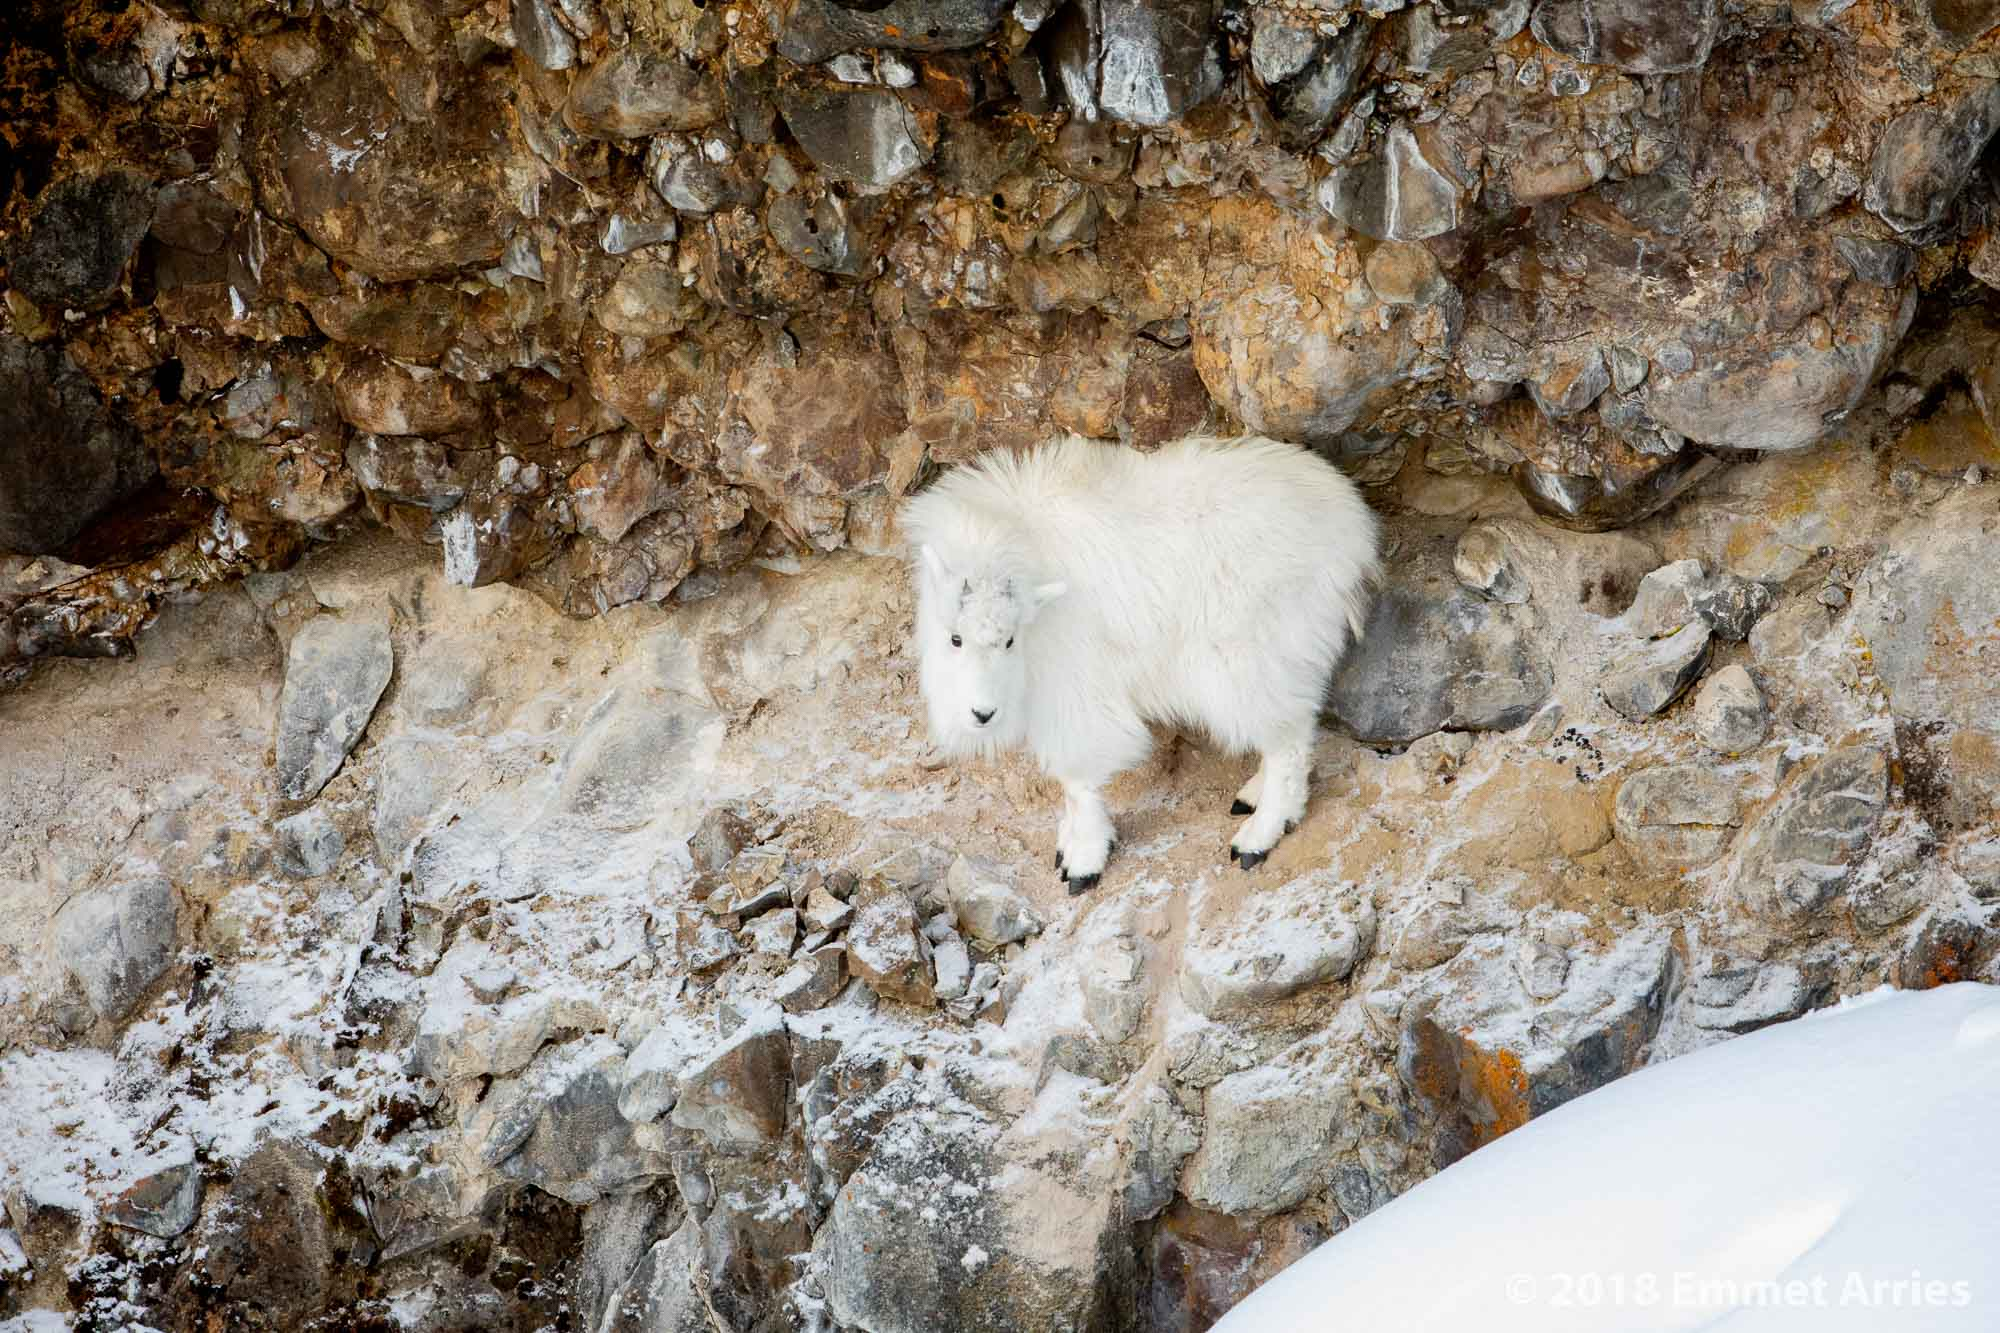 This mountain goat yearling was stuck in the bottom of this canyon after its mother was killed by wolves. It had been stuck for a couple of months when I took this image, so it might make it until springtime.